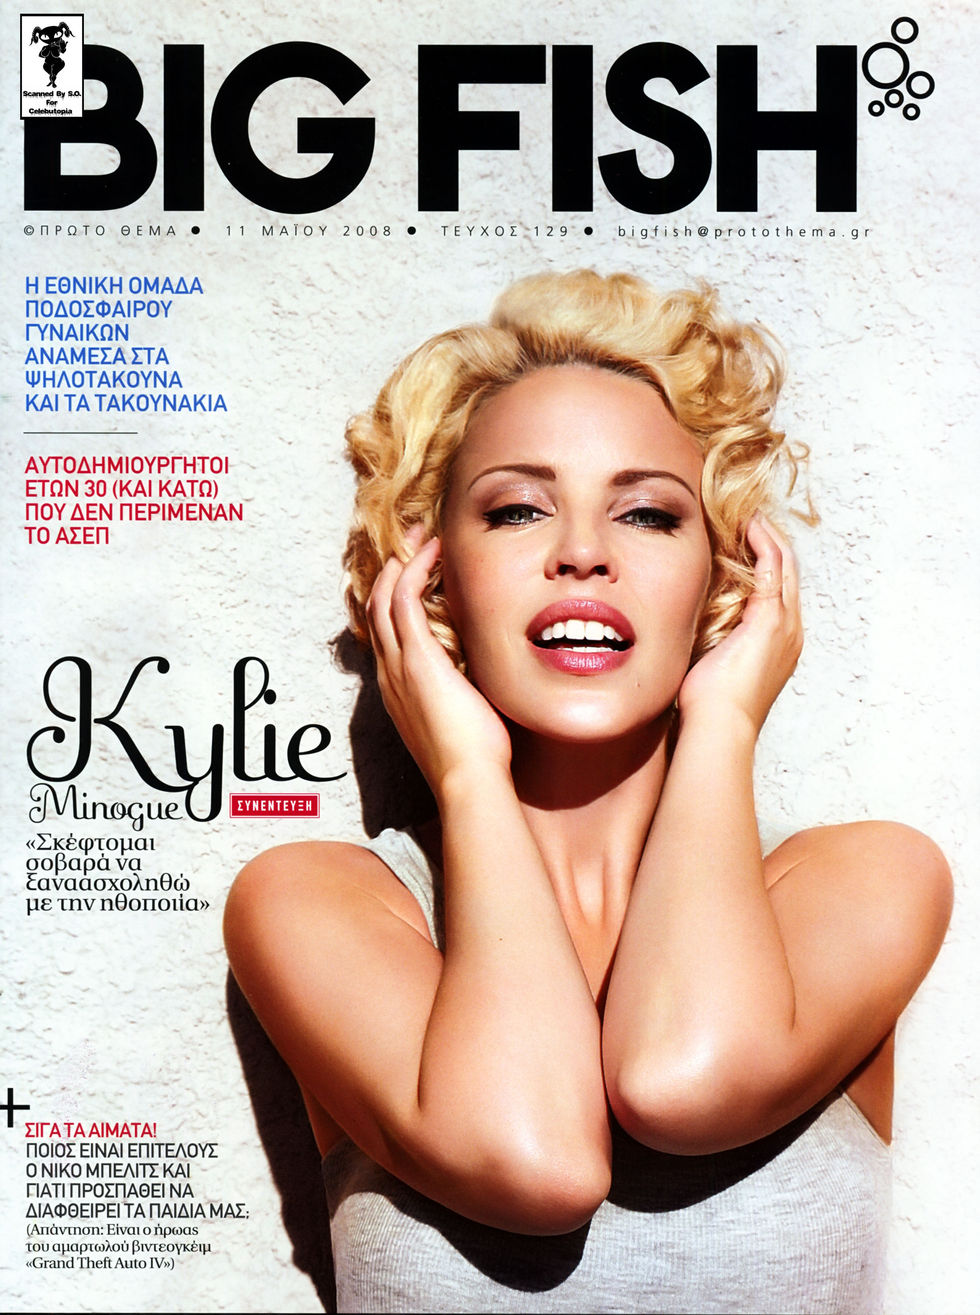 kylie-minogue-big-fish-magazine-may-2008-01